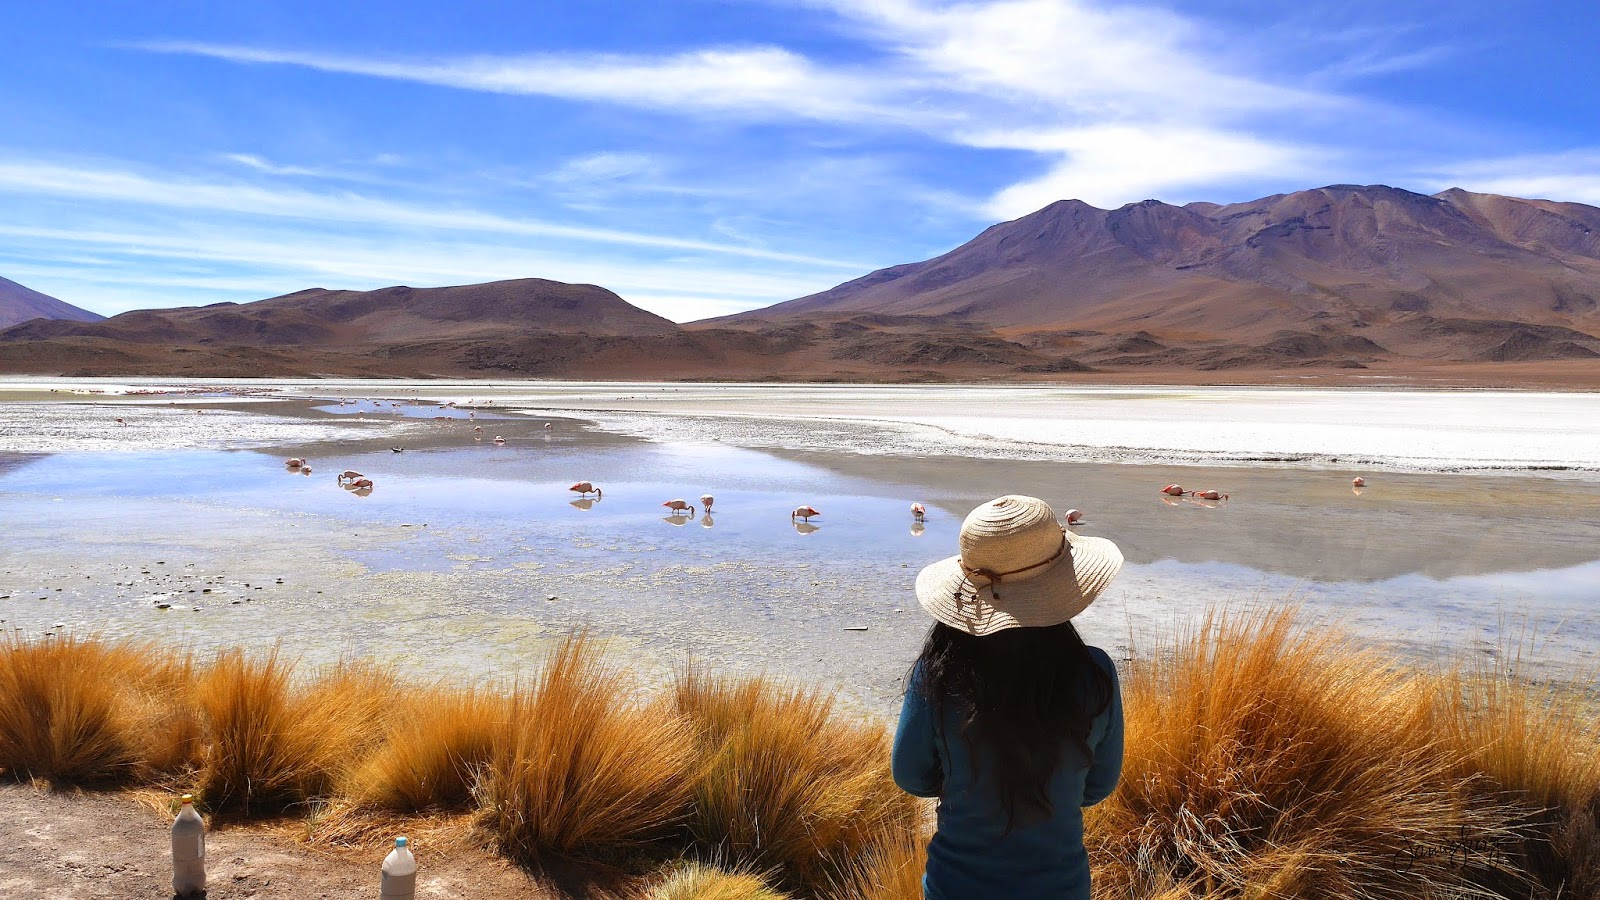 Pink and White Flamingos at Laguna Hedionda, Uyuni Tour, Bolivia